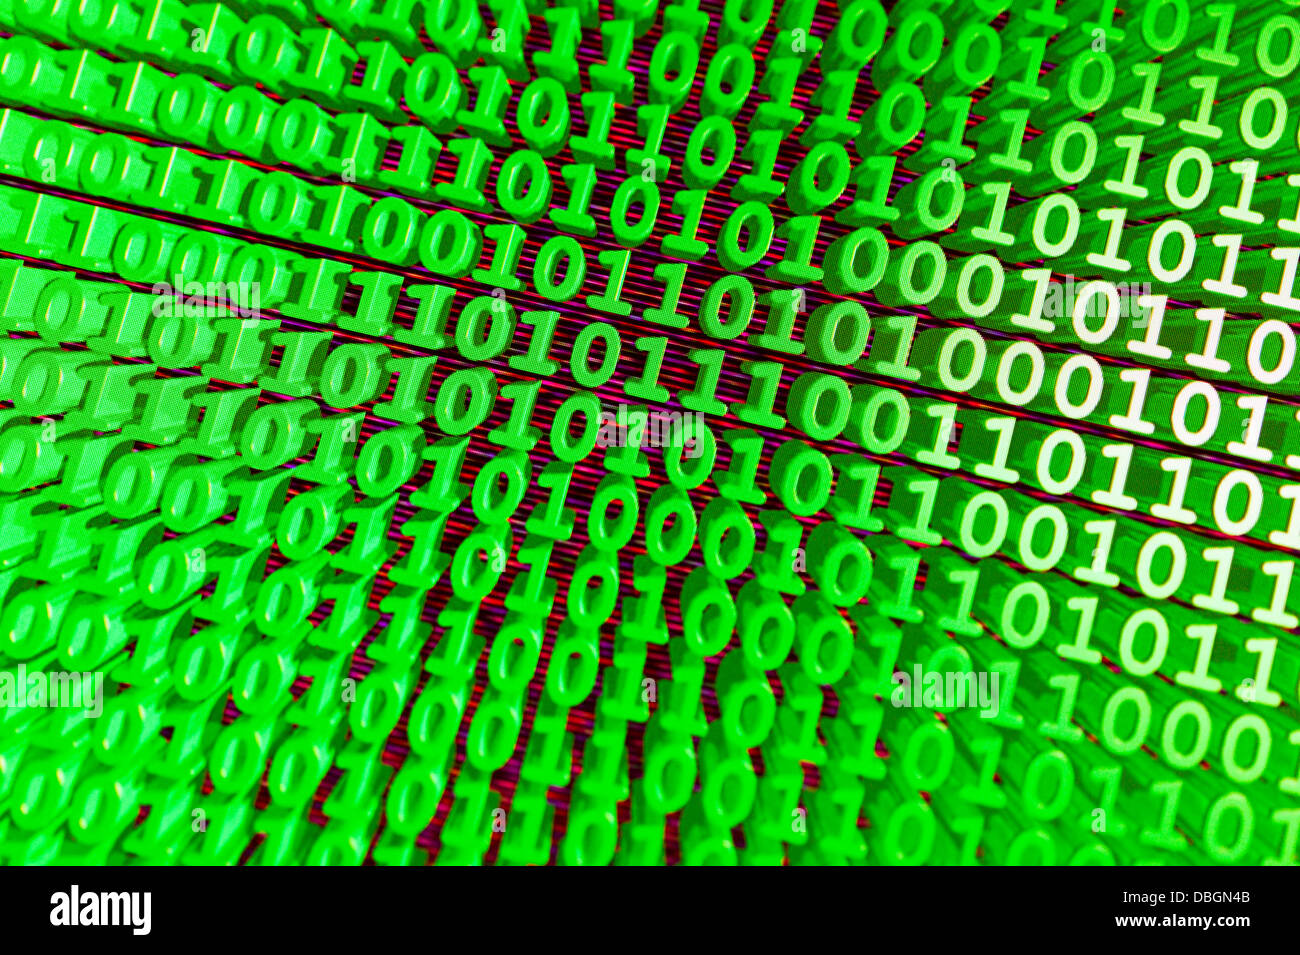 binary code representing online usage, data streams computer language in green - Stock Image